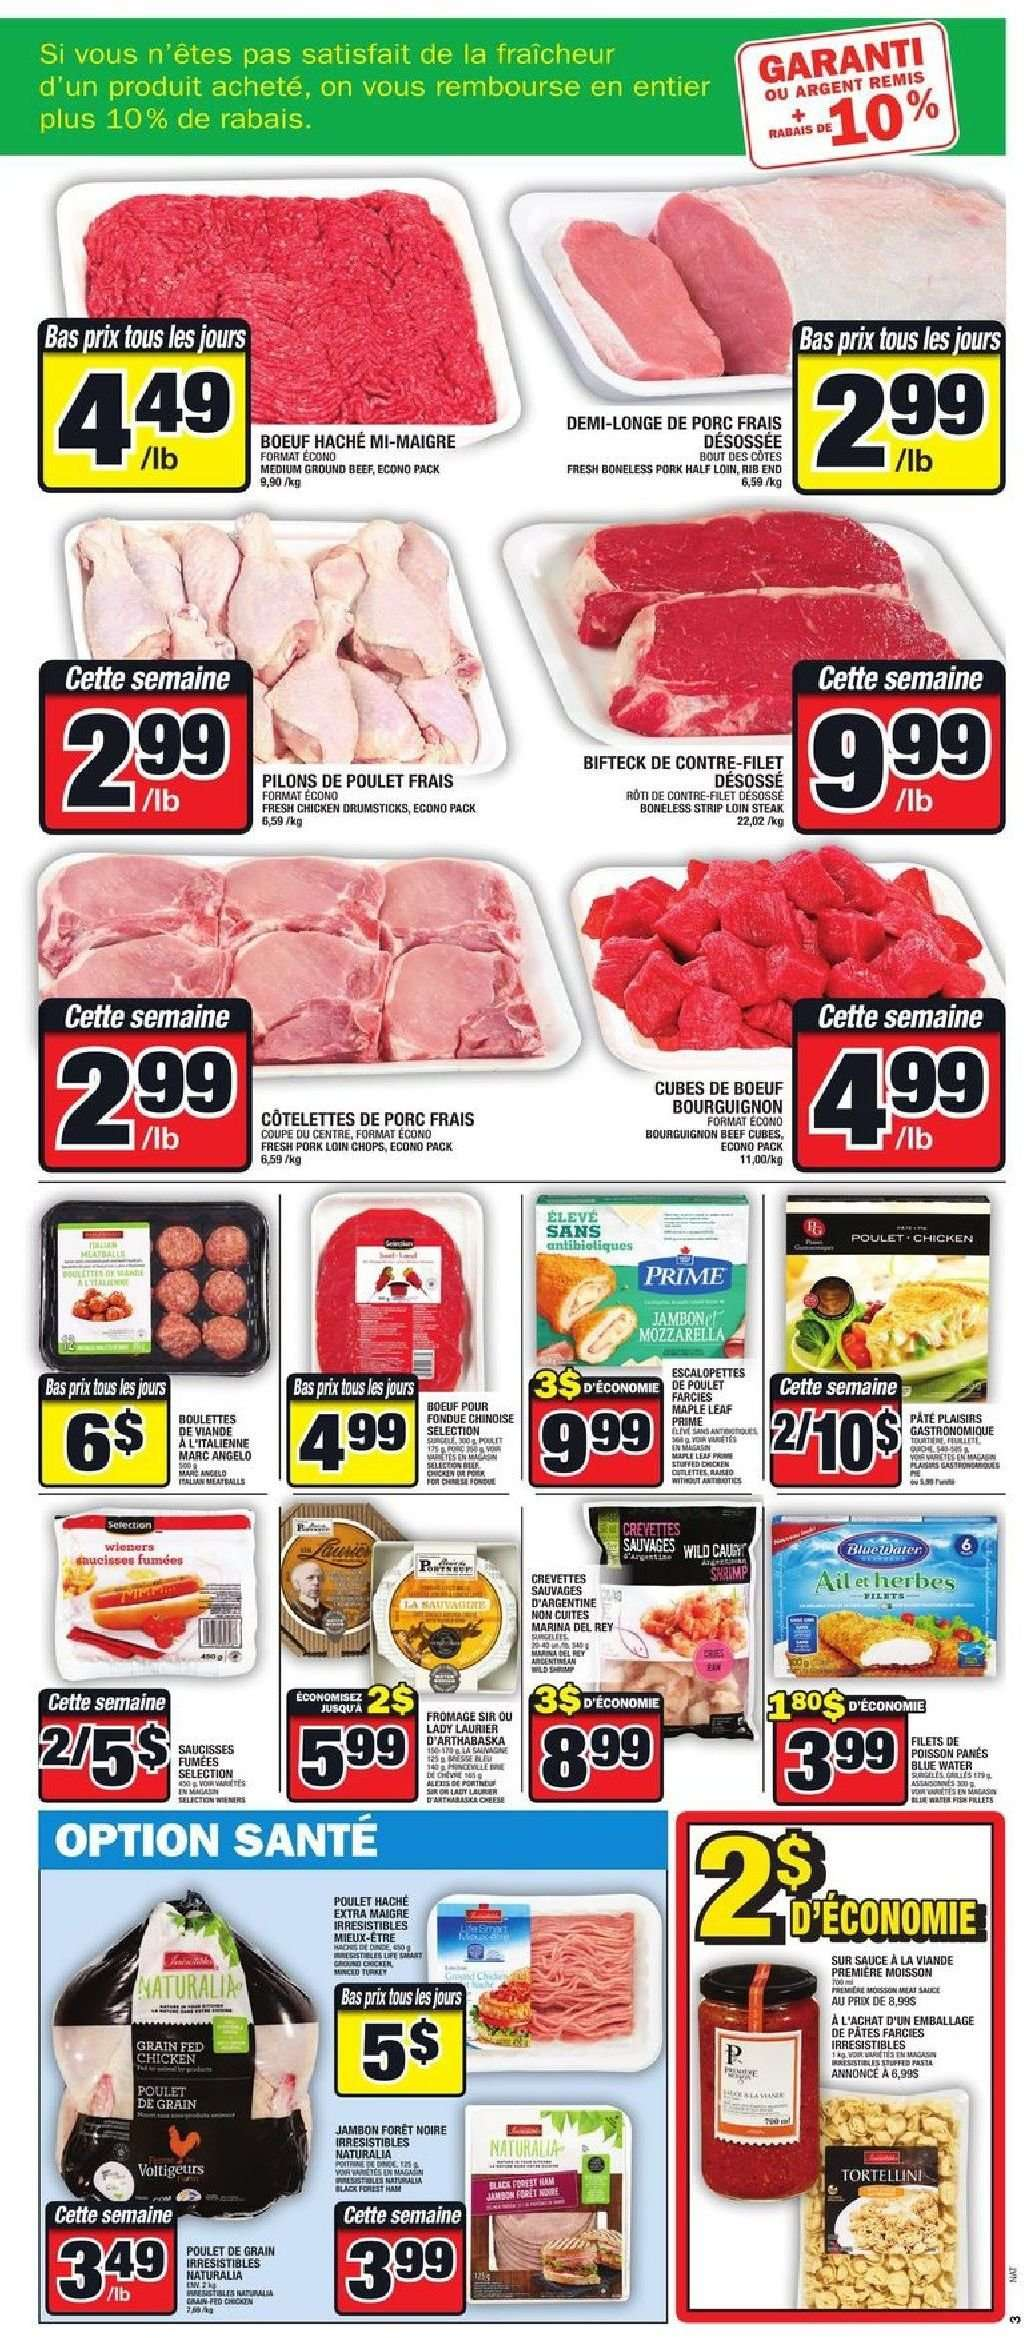 Super C Flyer - January 10, 2019 - January 16, 2019 - Sales products - beef meat, ground beef, pork loin, pork meat, chicken, chicken drumsticks, steak, poulet, viande, porc, jambon, bœuf, coupe, fondue, fromage, tortellini, saucisse, pâtes. Page 4.